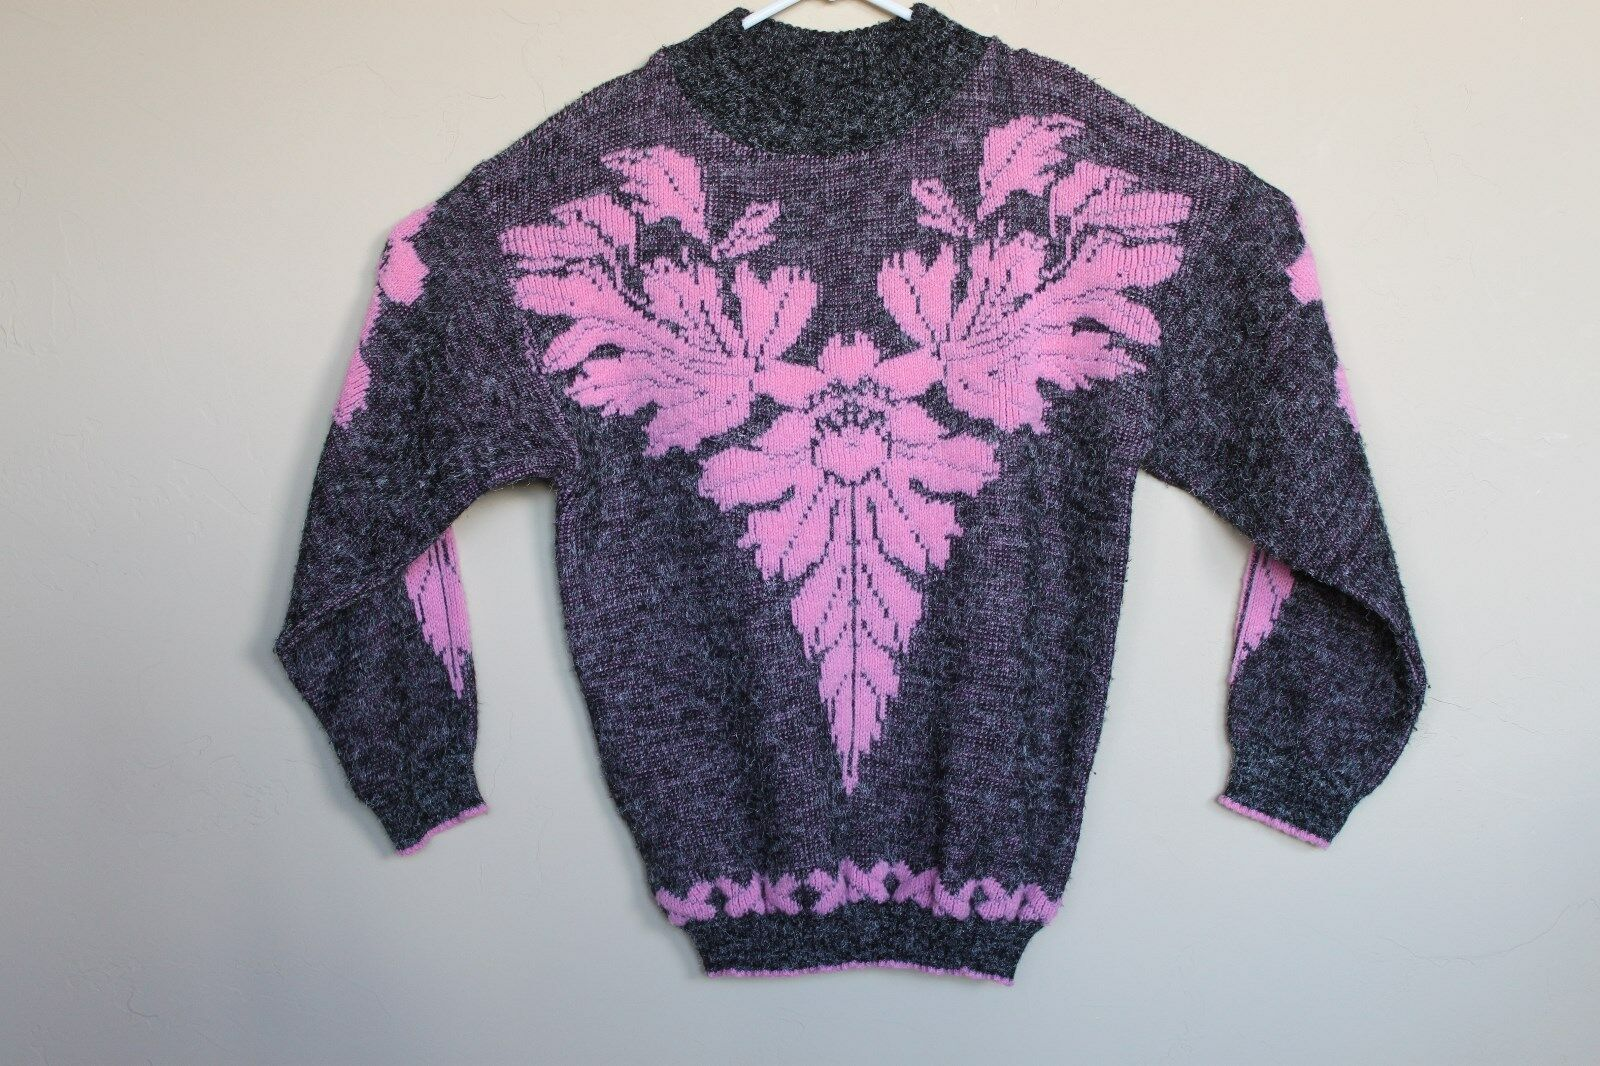 Vintage Arielle Sweatshirt Knit Rosa and grau damen M L